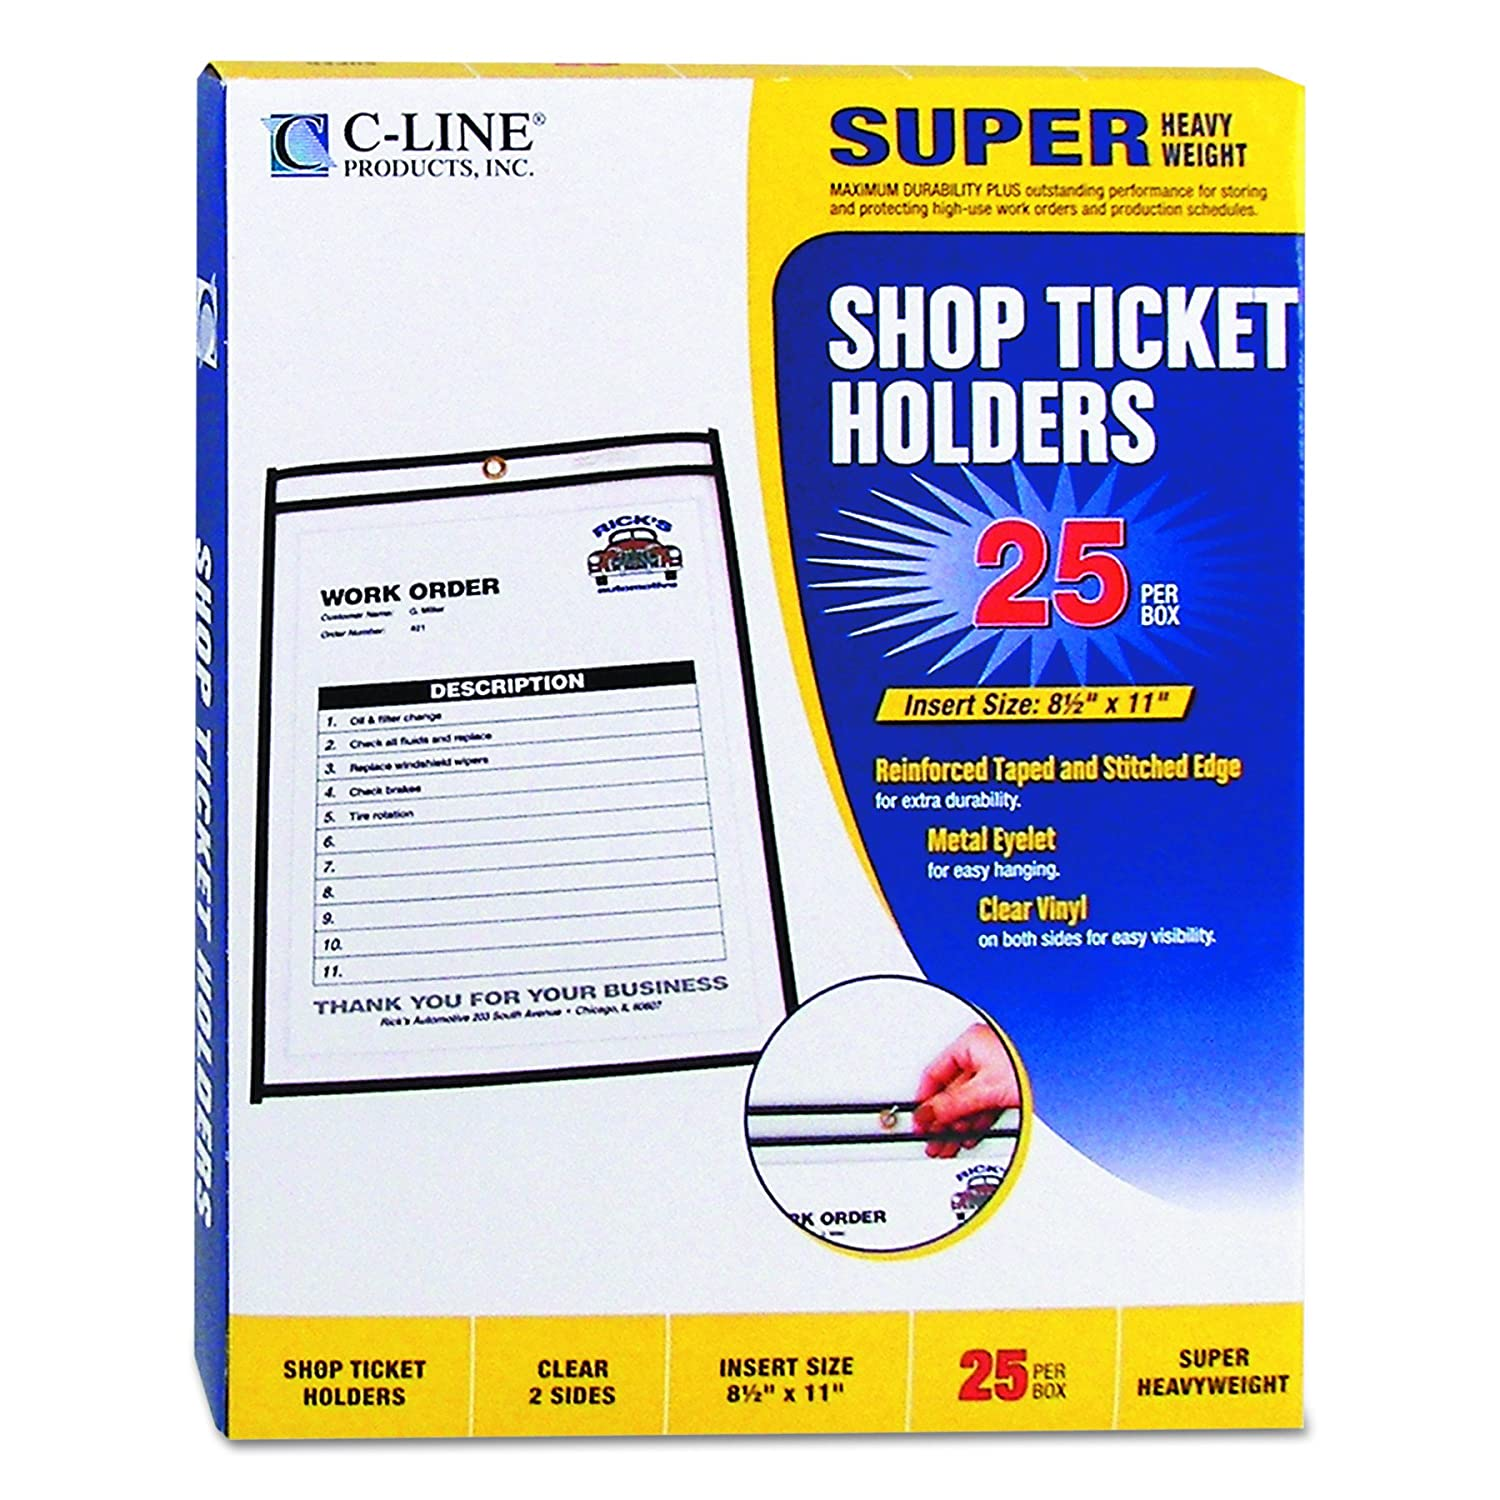 C-Line High Capacity Stitched Shop Ticket Holders, Gusseted with Flap Closure, Both Sides Clear, 1 x 9 x 12 Inches, 15 per Box (39912) C-Line Products Inc.